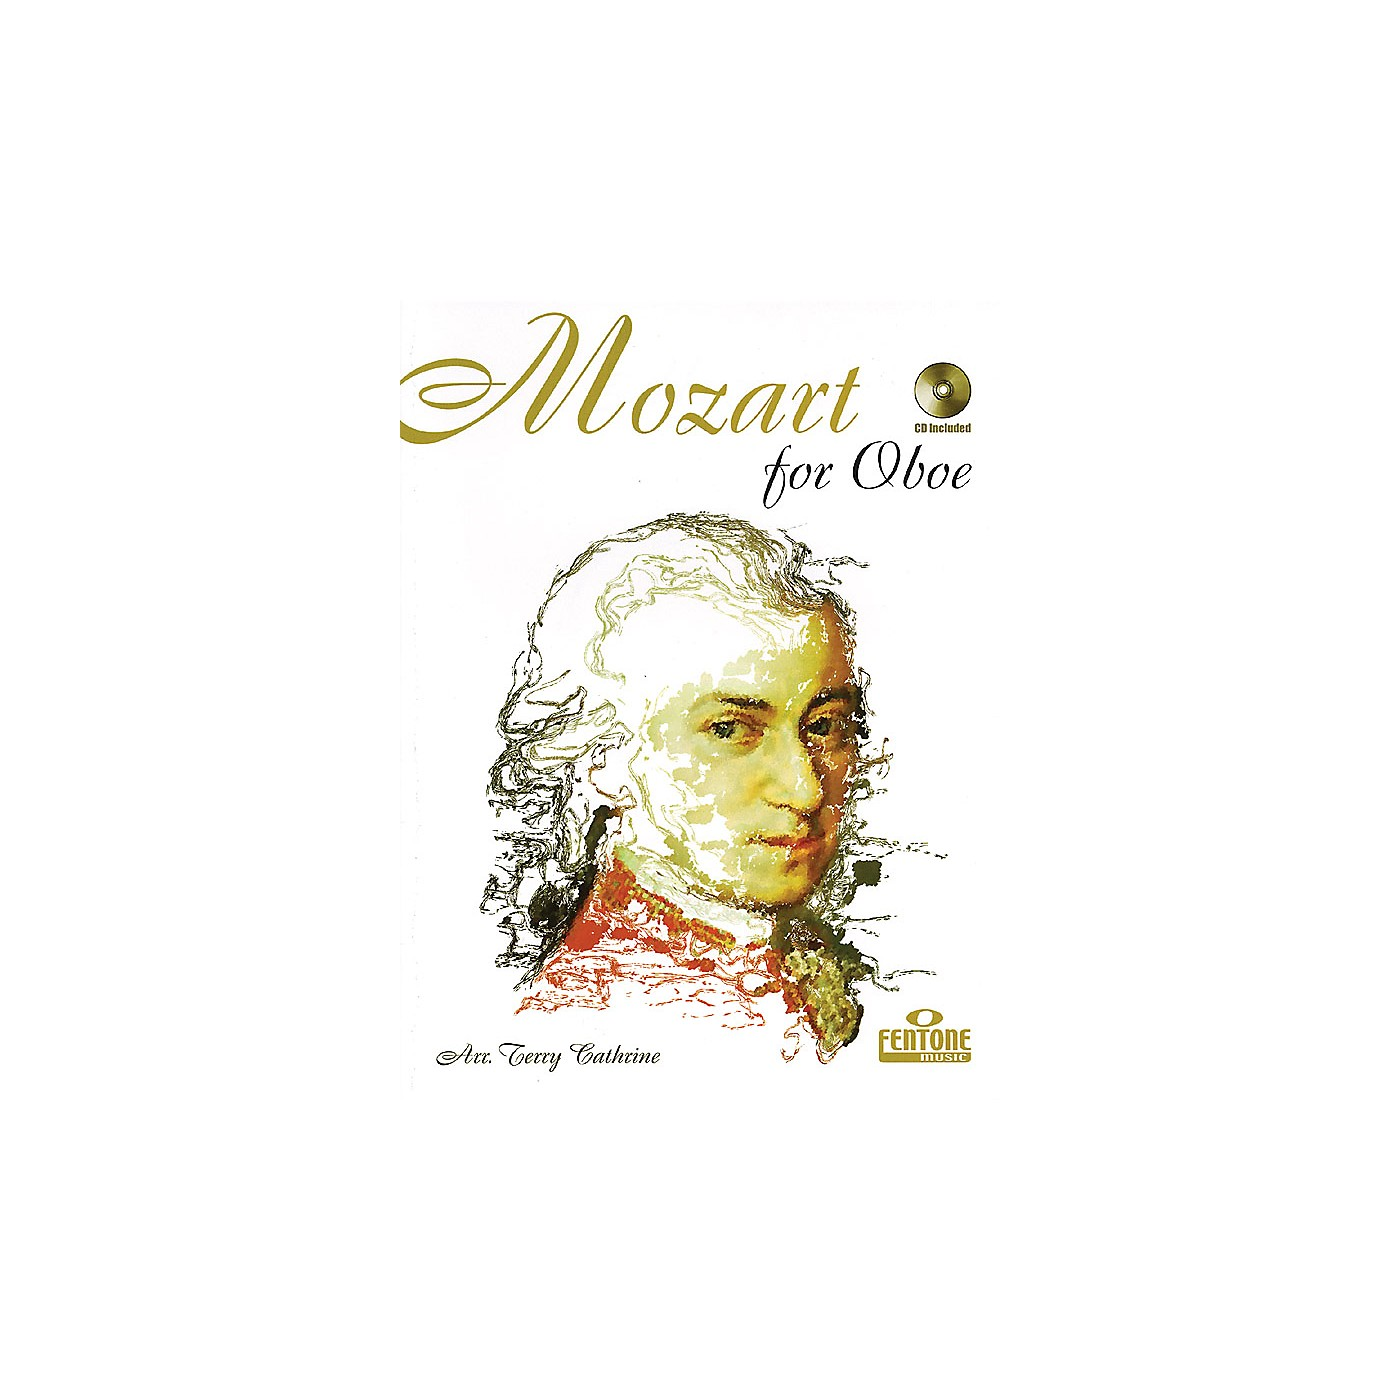 Fentone Mozart for Oboe (Classical Instrumental Play-Along (Book/CD Pack)) Fentone Instrumental Books Series thumbnail